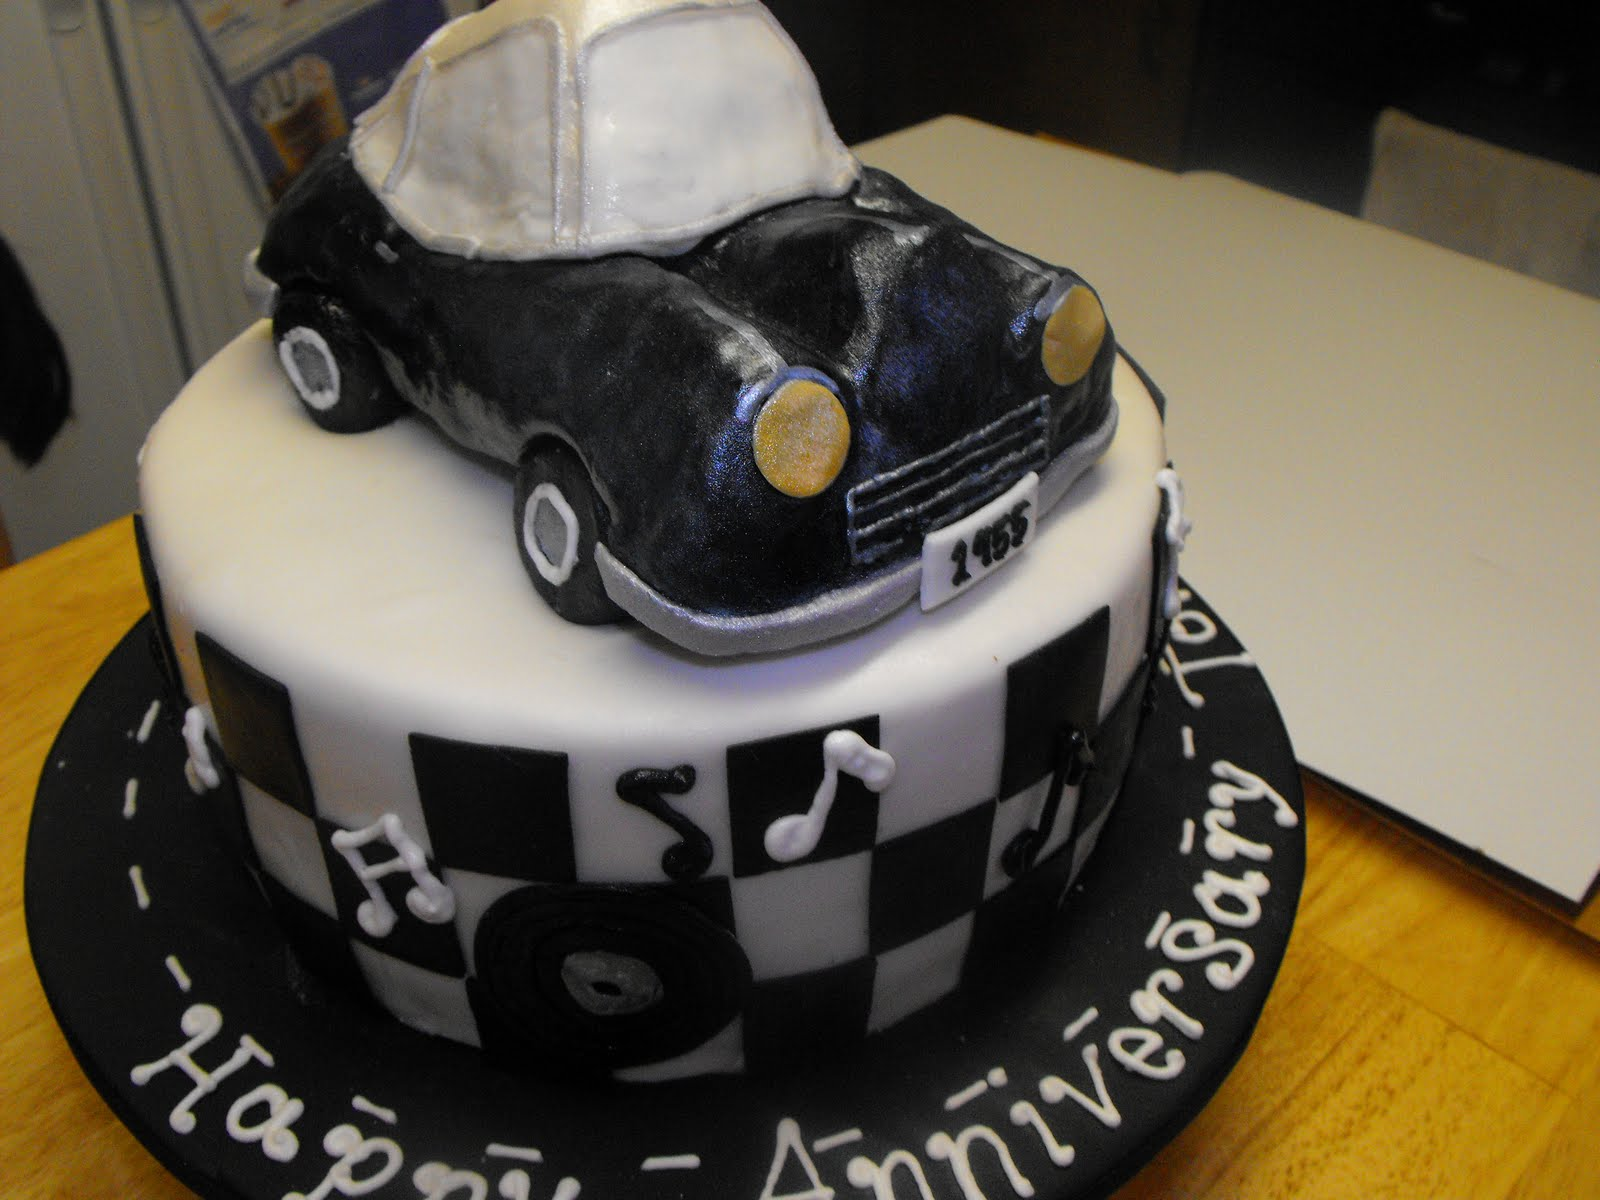 1950 Theme Cake http://sophiascakery.blogspot.com/2010/06/black-and-white-1950s-themed-cake-for.html